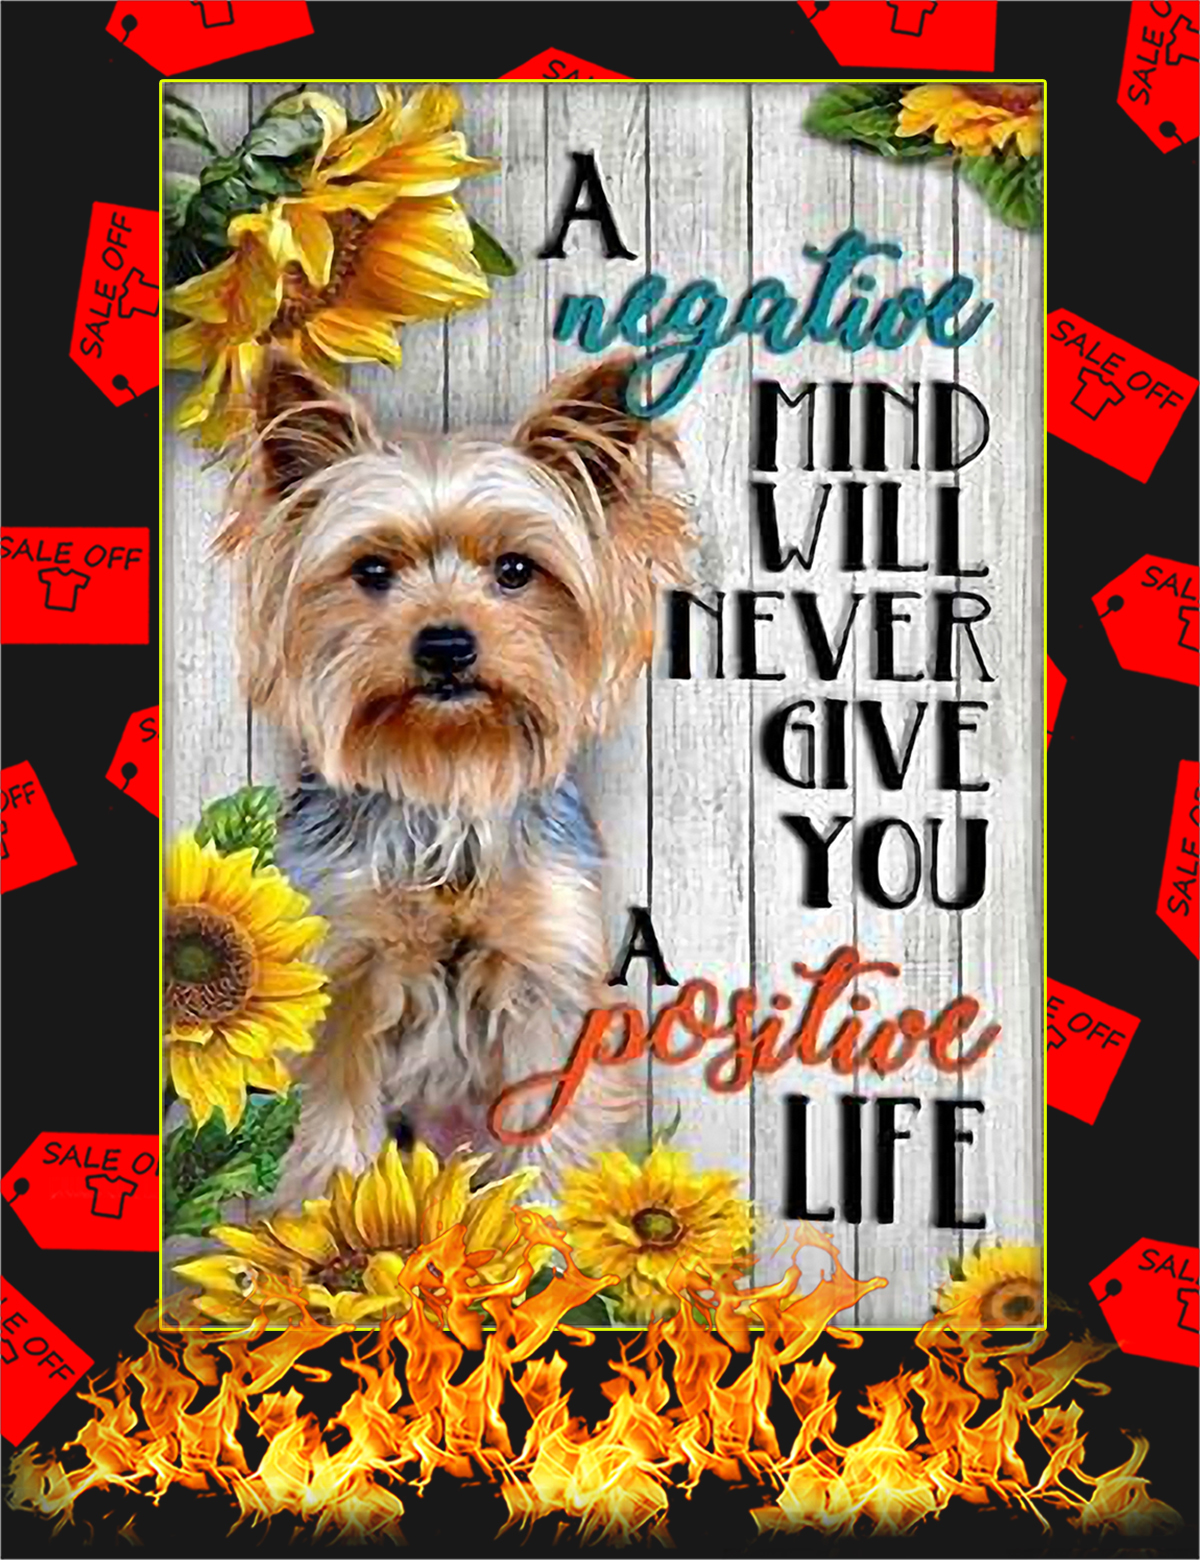 Yorkshire A negative mind will never give you a positive life poster - A1